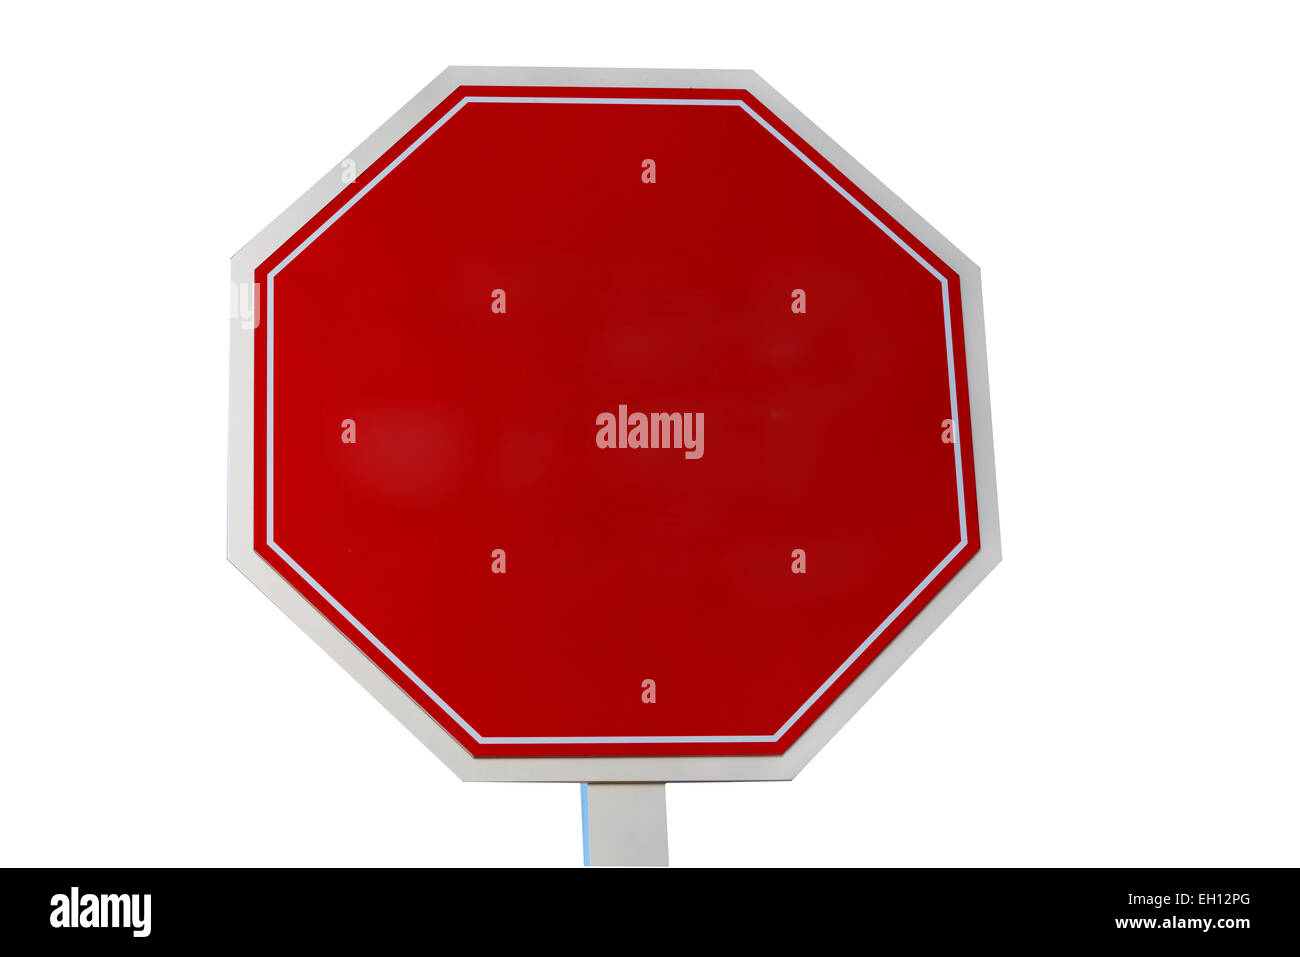 Blank Red Road Sign Stockfotos & Blank Red Road Sign Bilder - Alamy